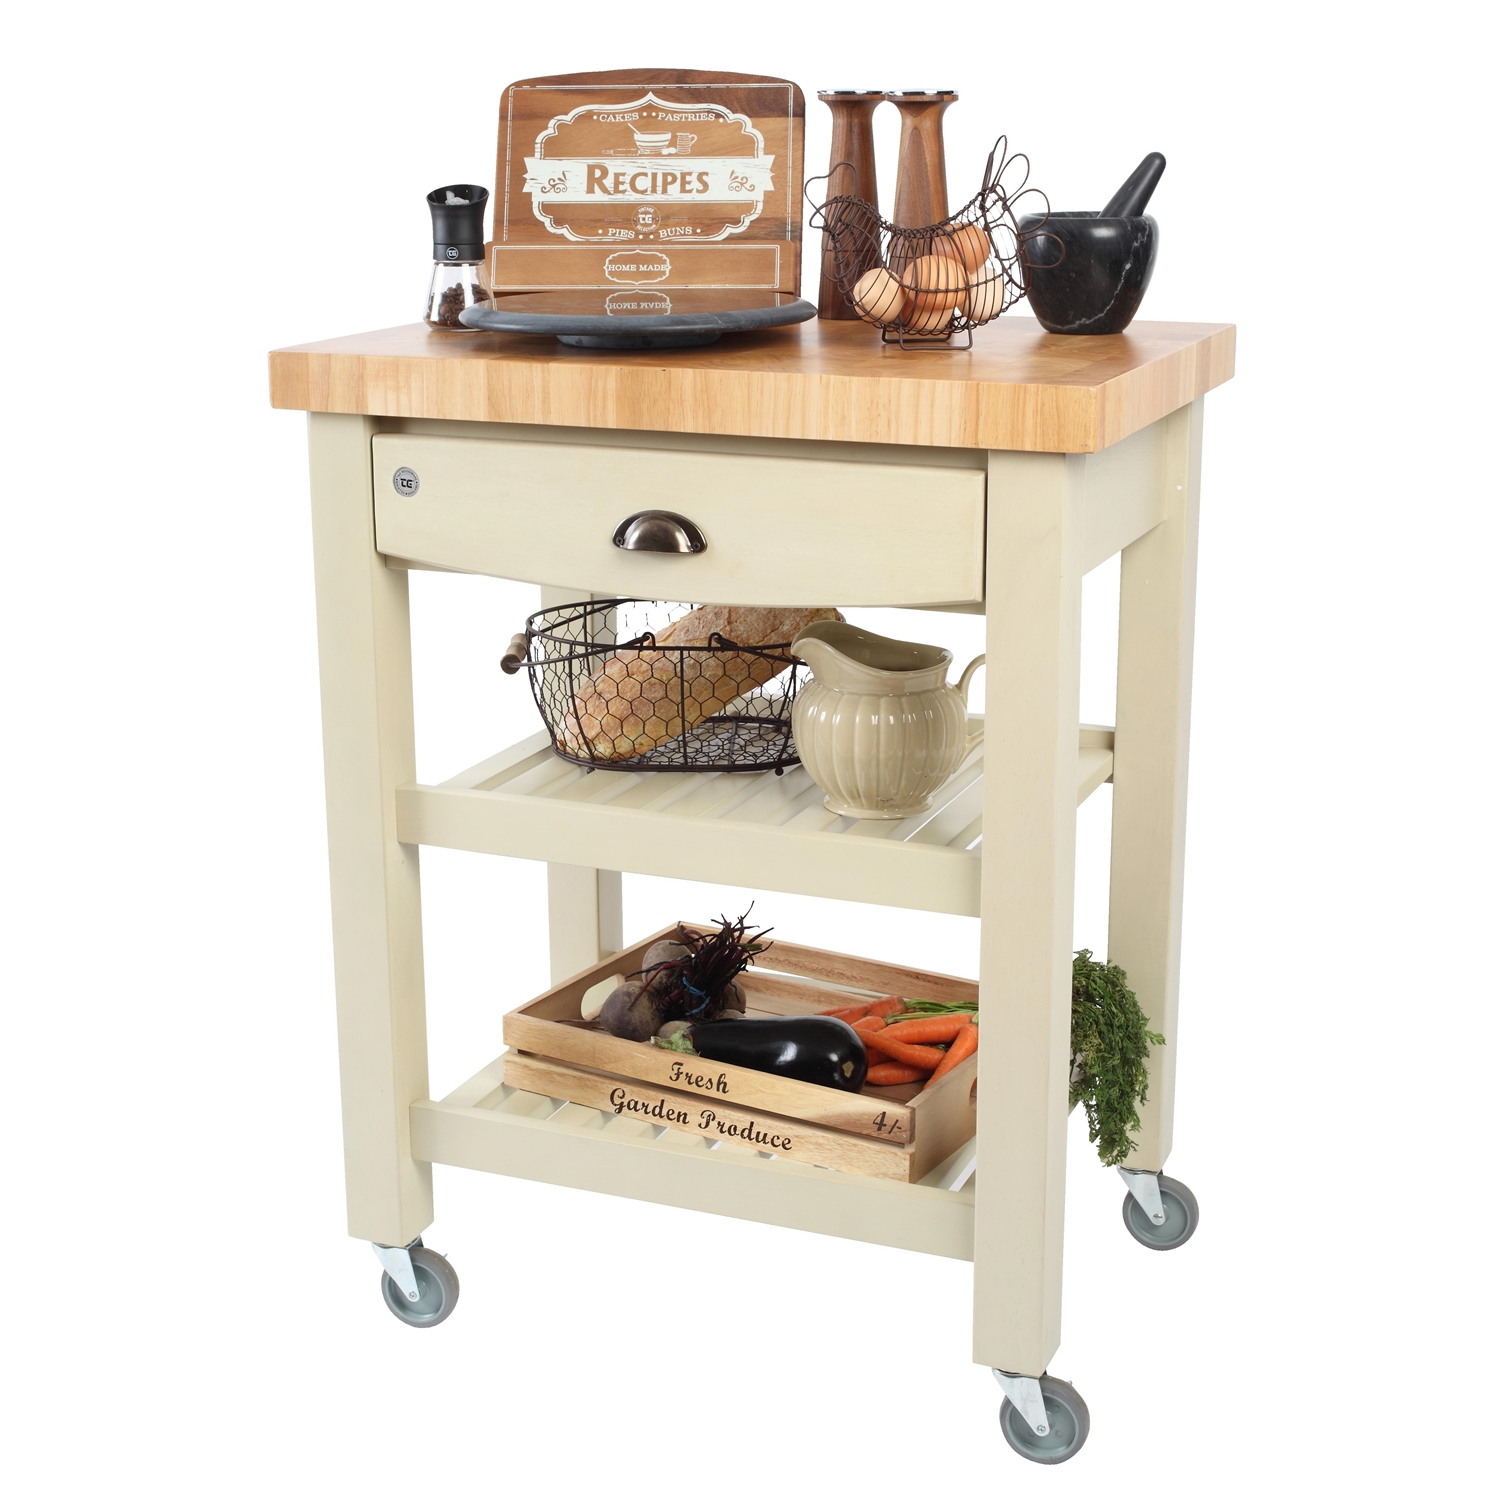 Image of T&G Woodware Pembroke Trolley, Flatpack